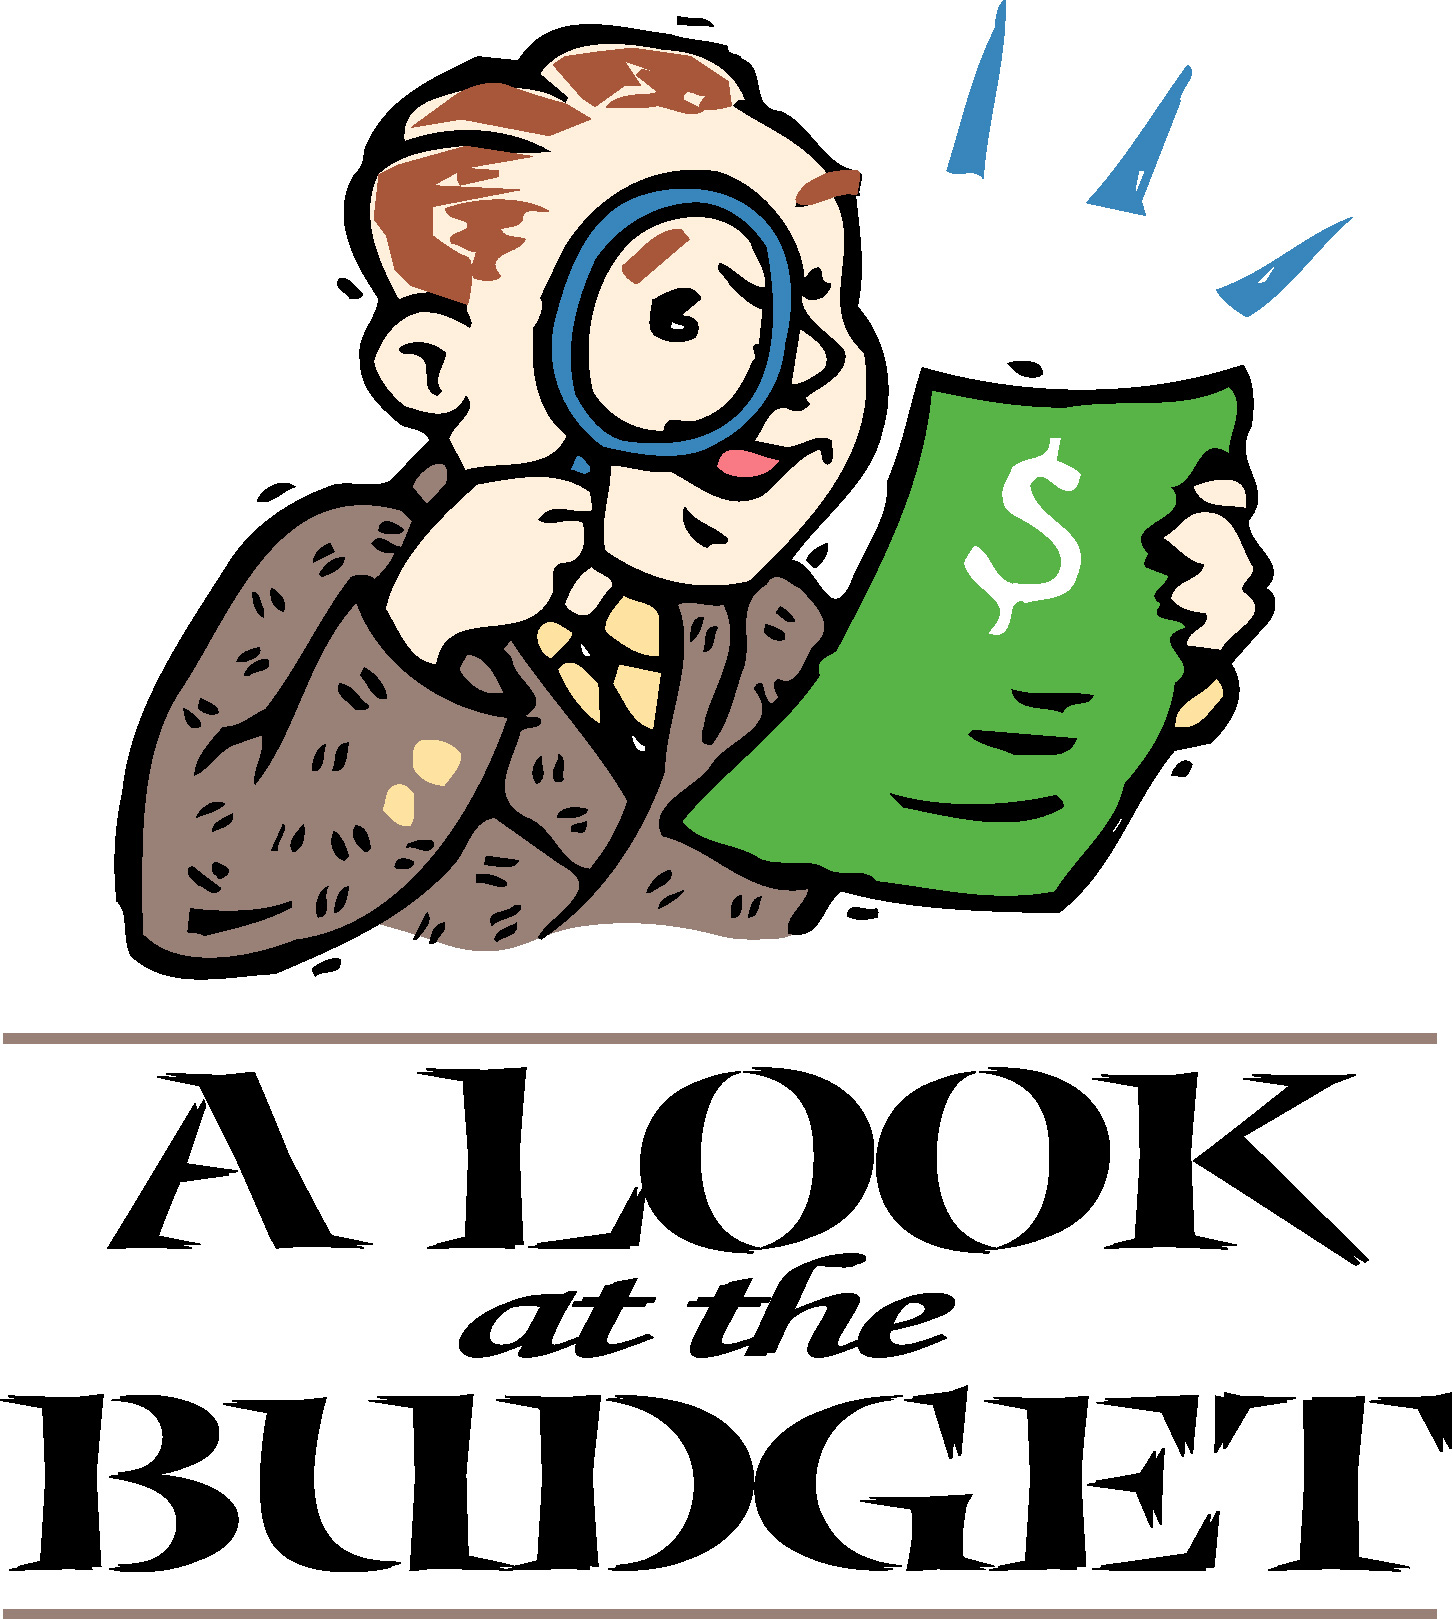 Free Budget Cliparts, Download Free Clip Art, Free Clip Art.